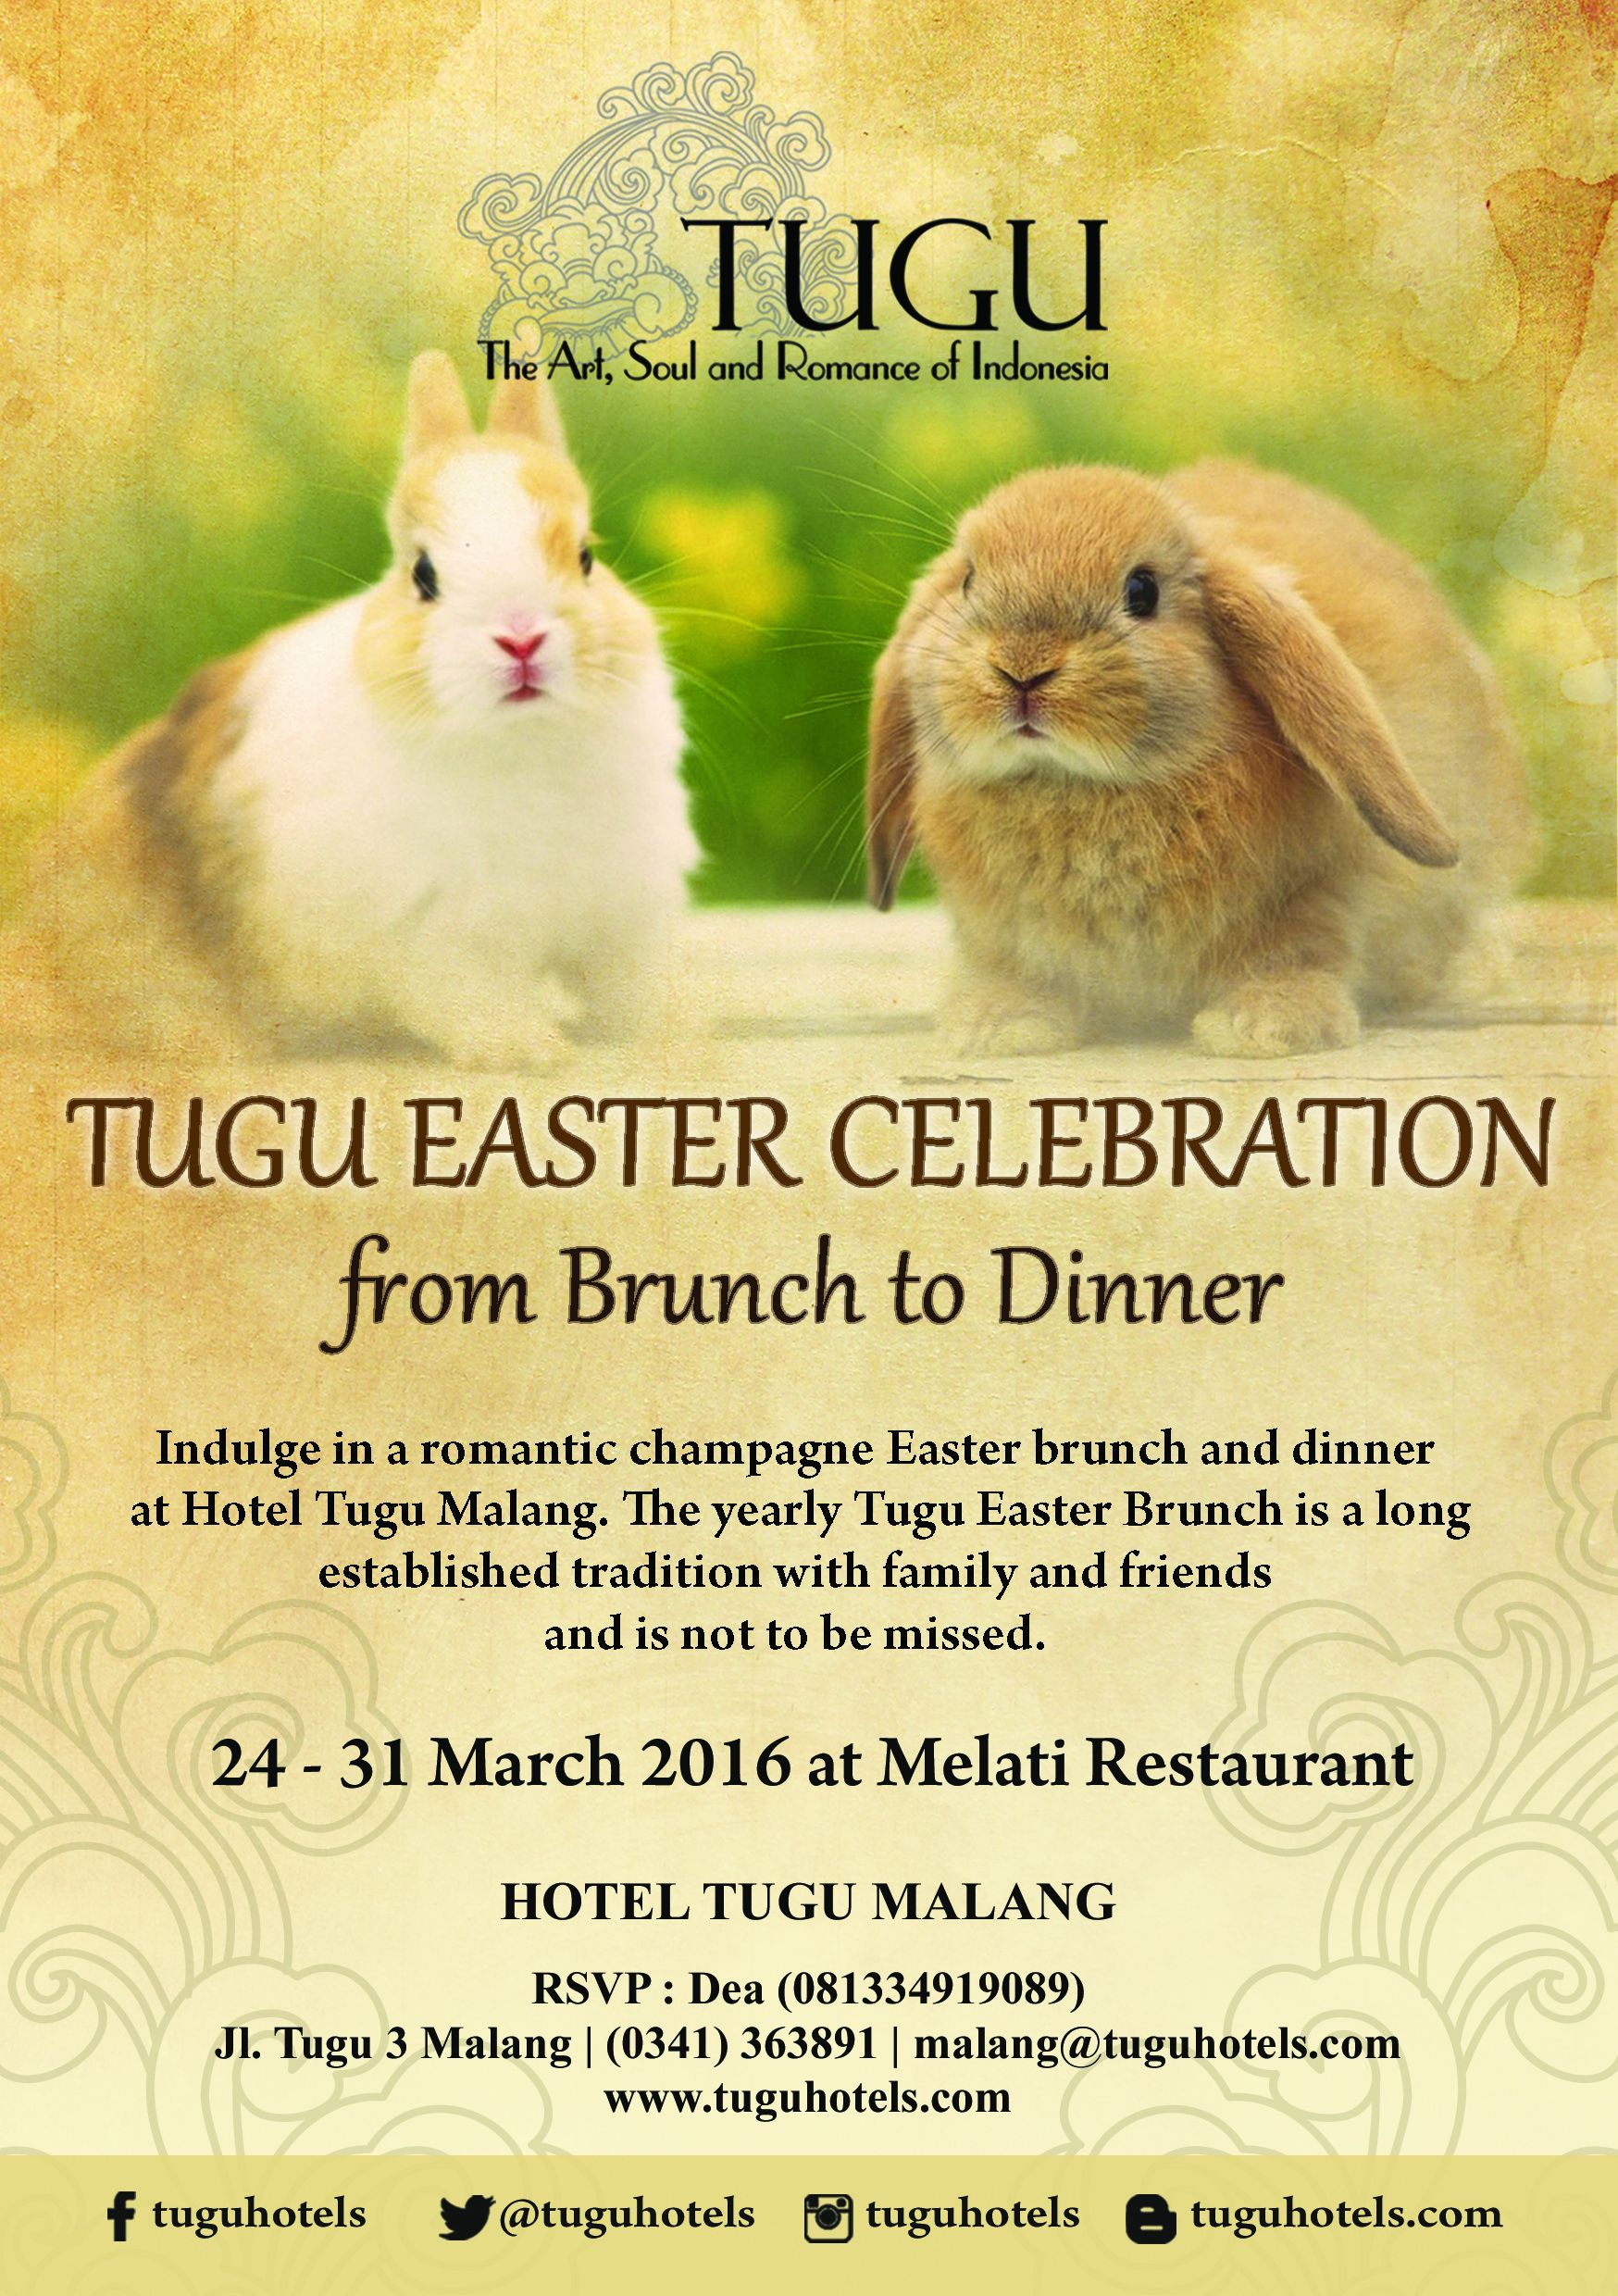 TUGU EASTER CELEBRATION at Hotel Tugu Malang